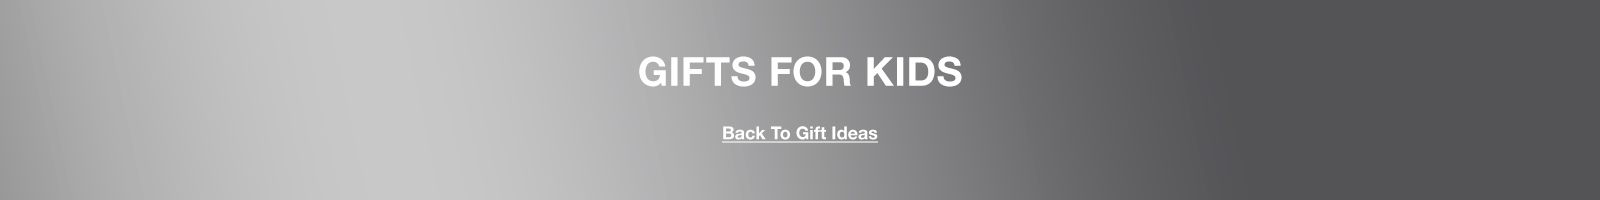 Gifts For Kids, Back to Gift Ideas